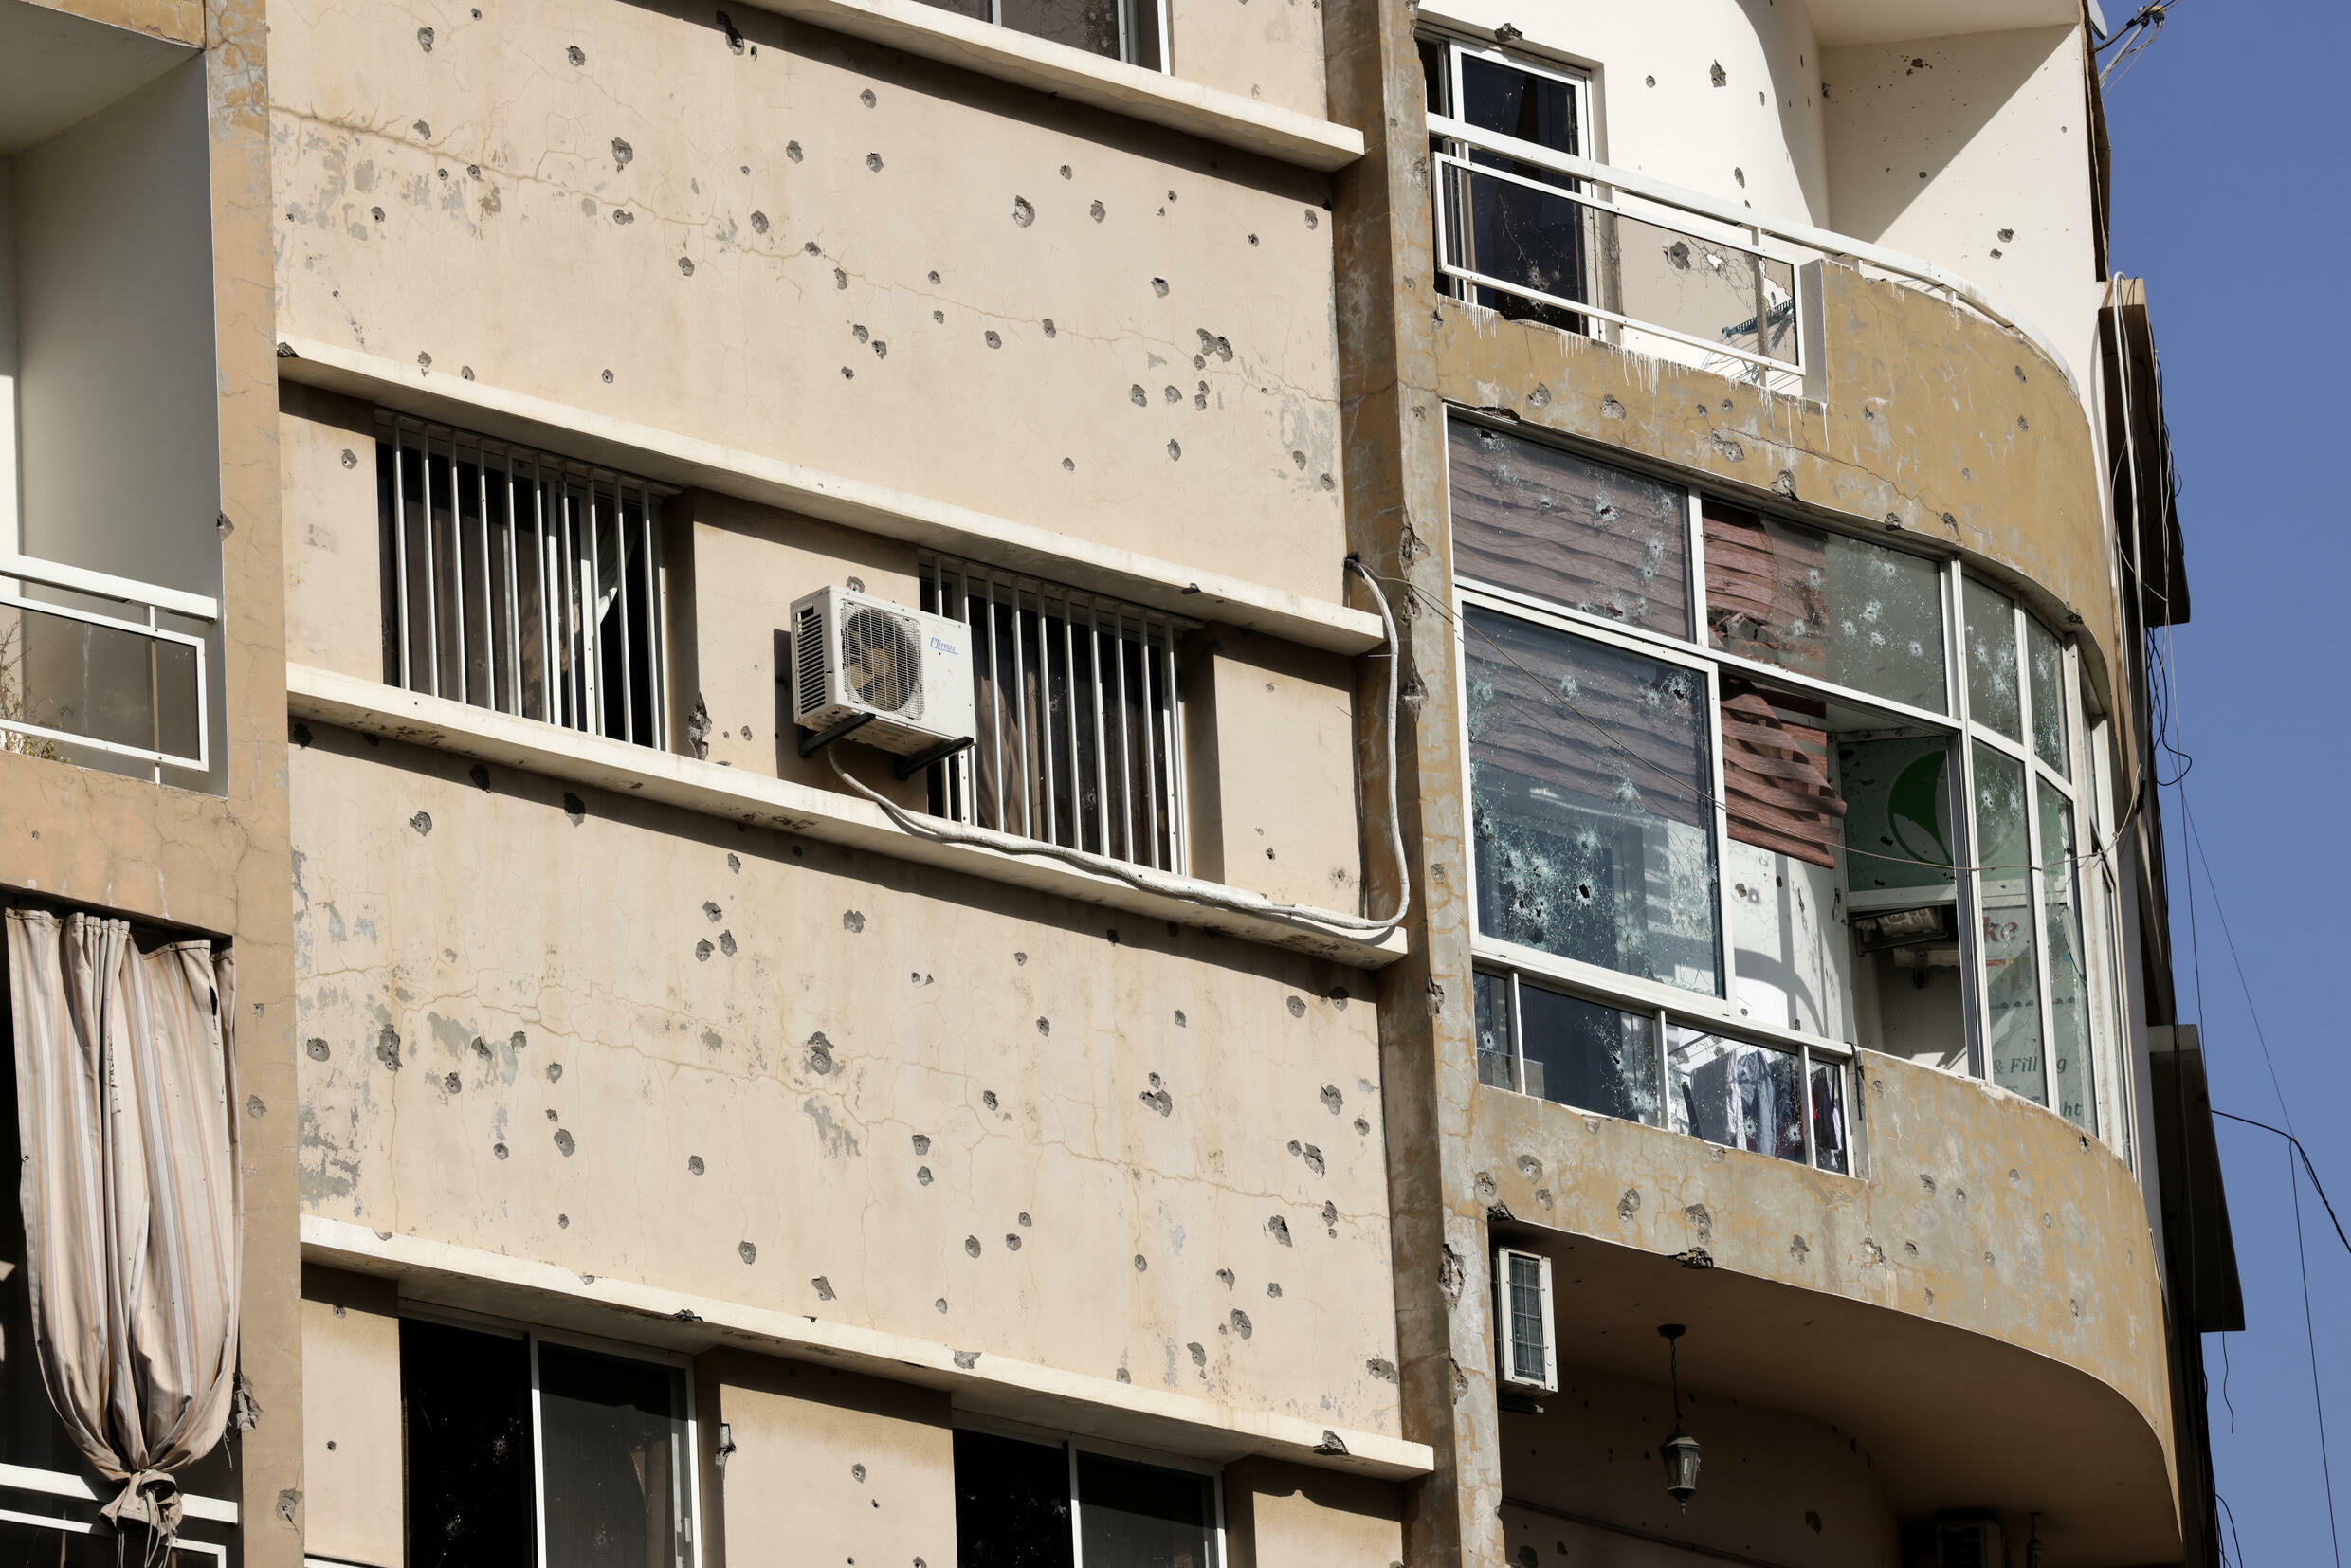 A bullet-riddled building during clashes in the Tayouneh area of Beirut, at the crossroads of Shiite and Christian militia bastions that were also battlegrounds in Lebanon's civil war